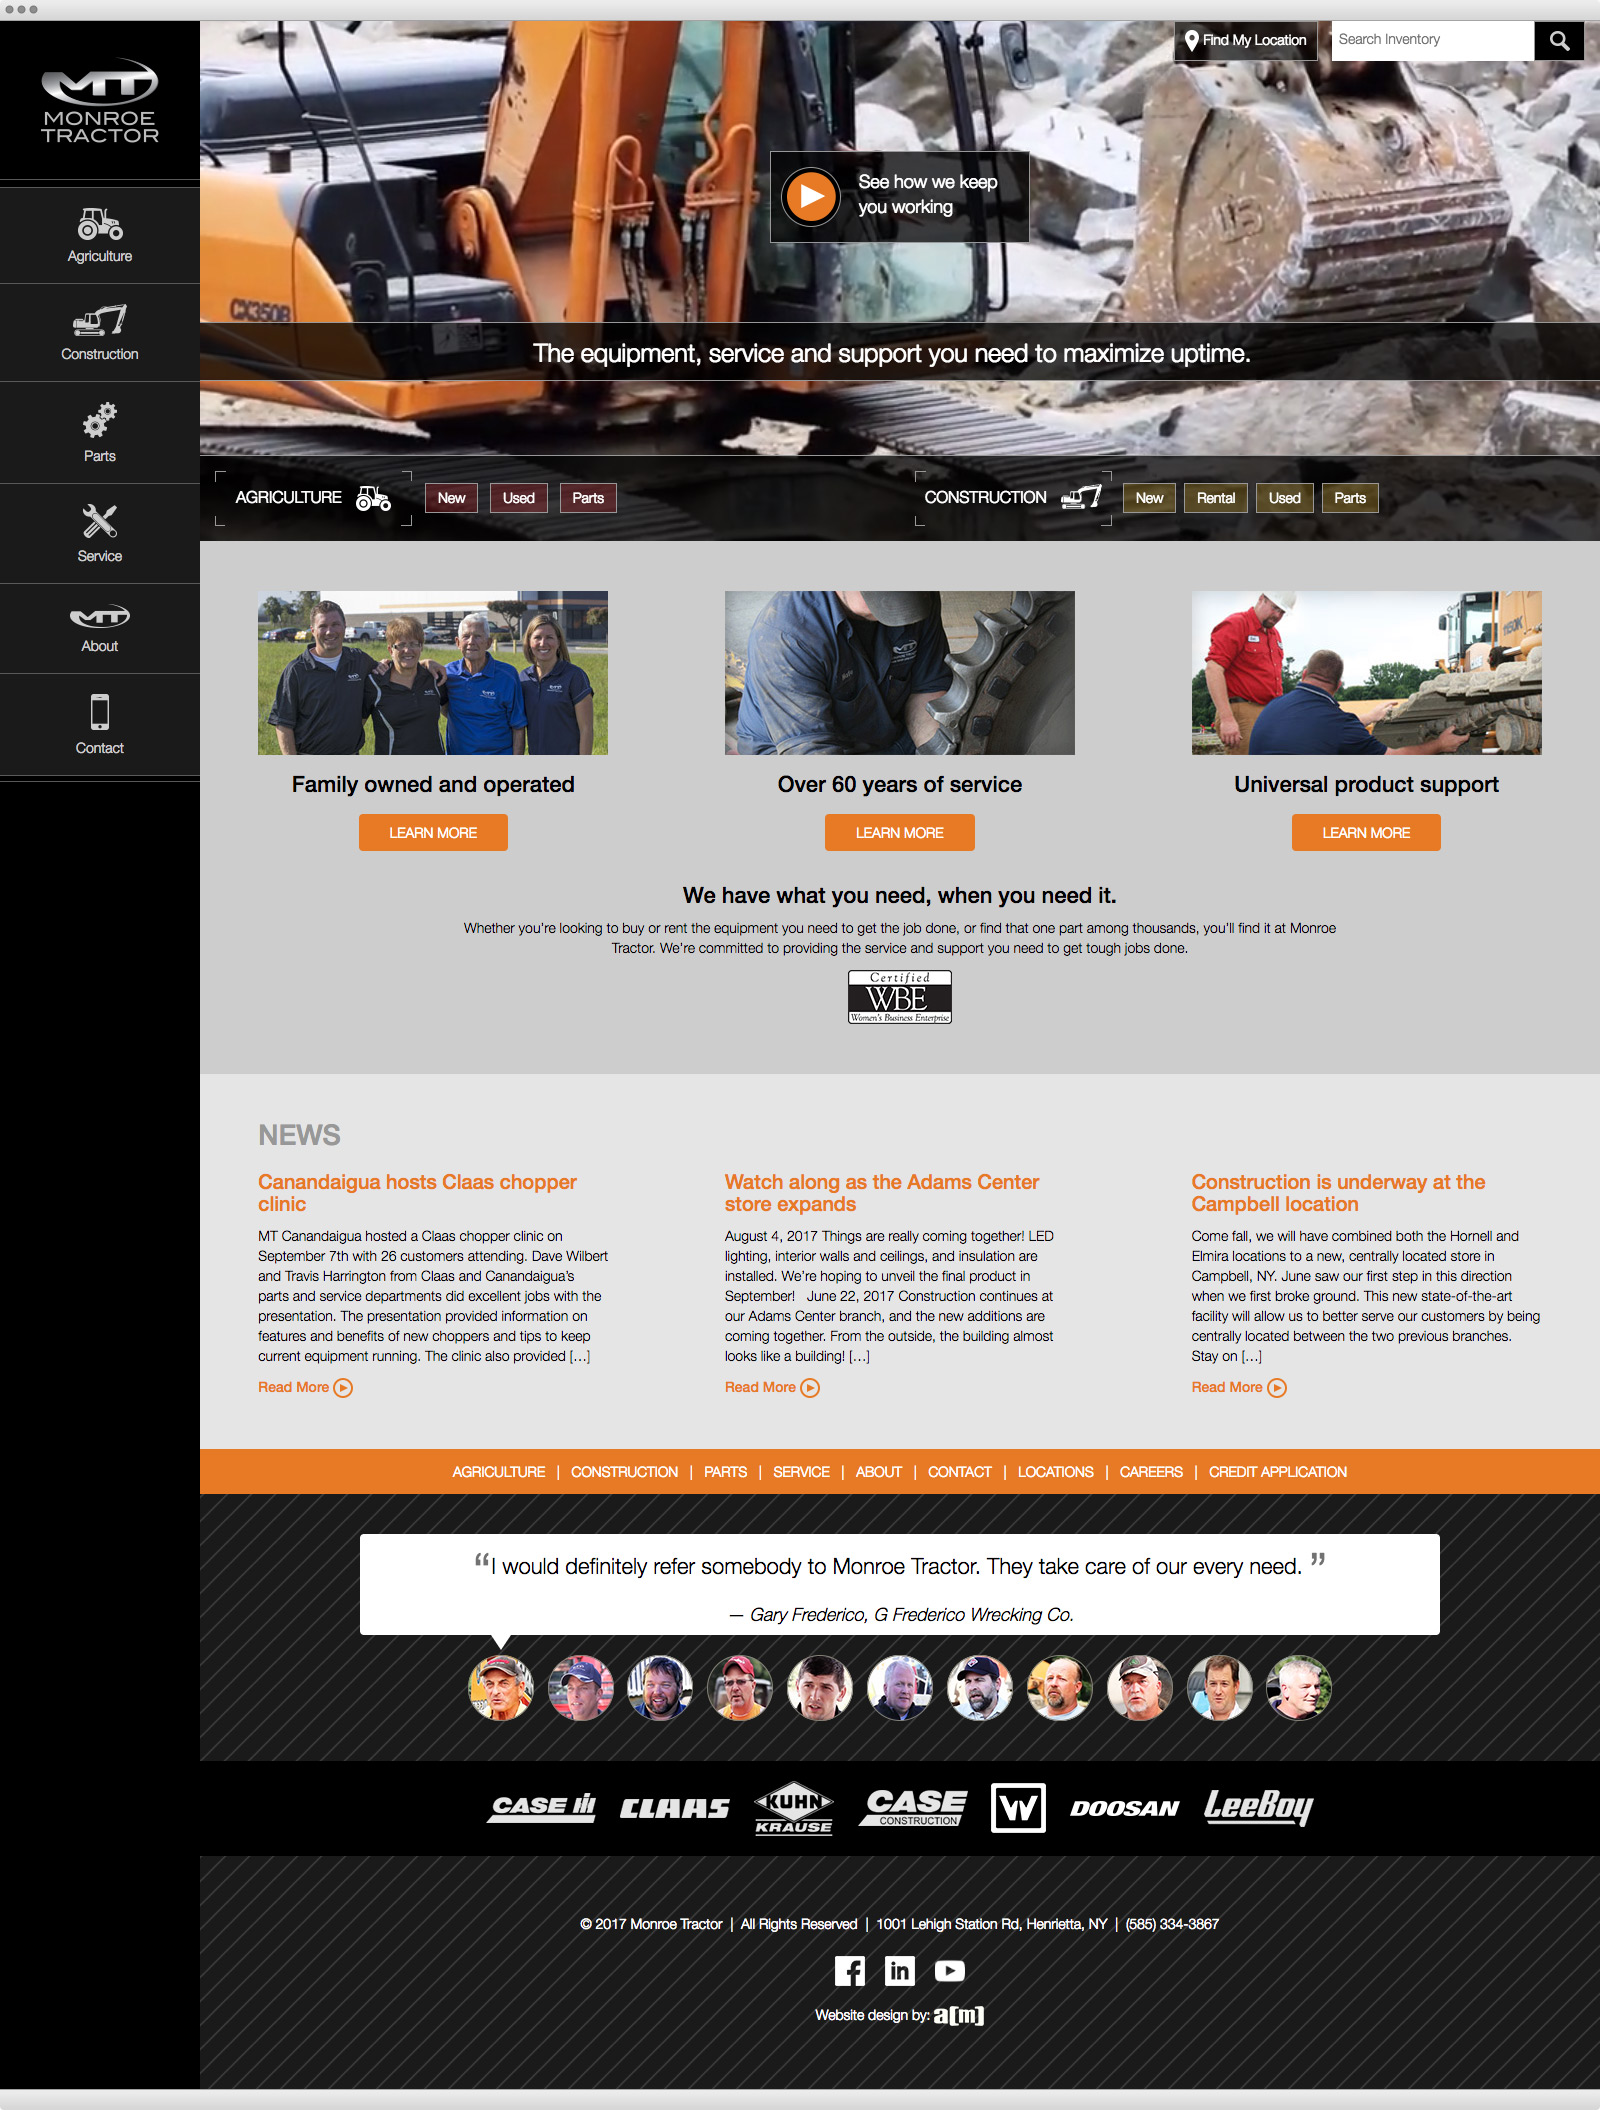 Monroe Tractor website design